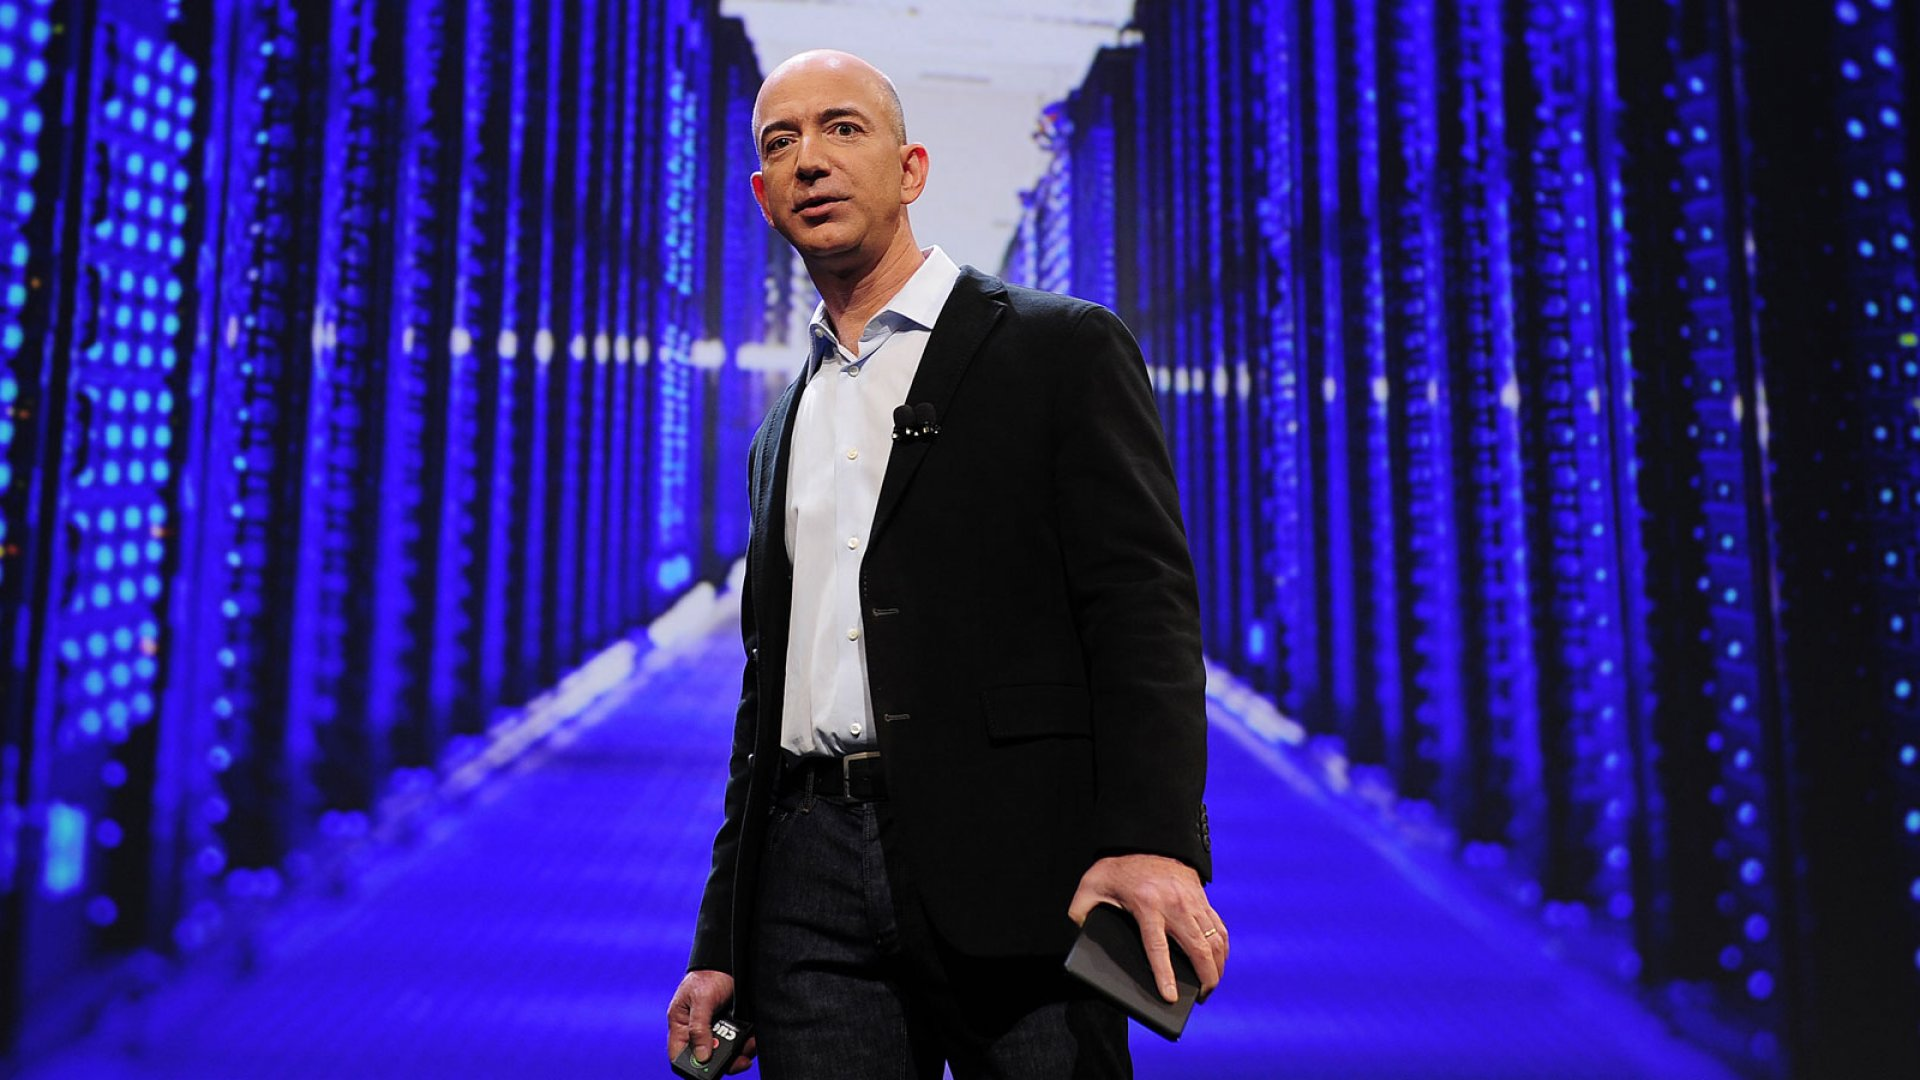 Jeff Bezos 'Invented His Way Out' of Failure